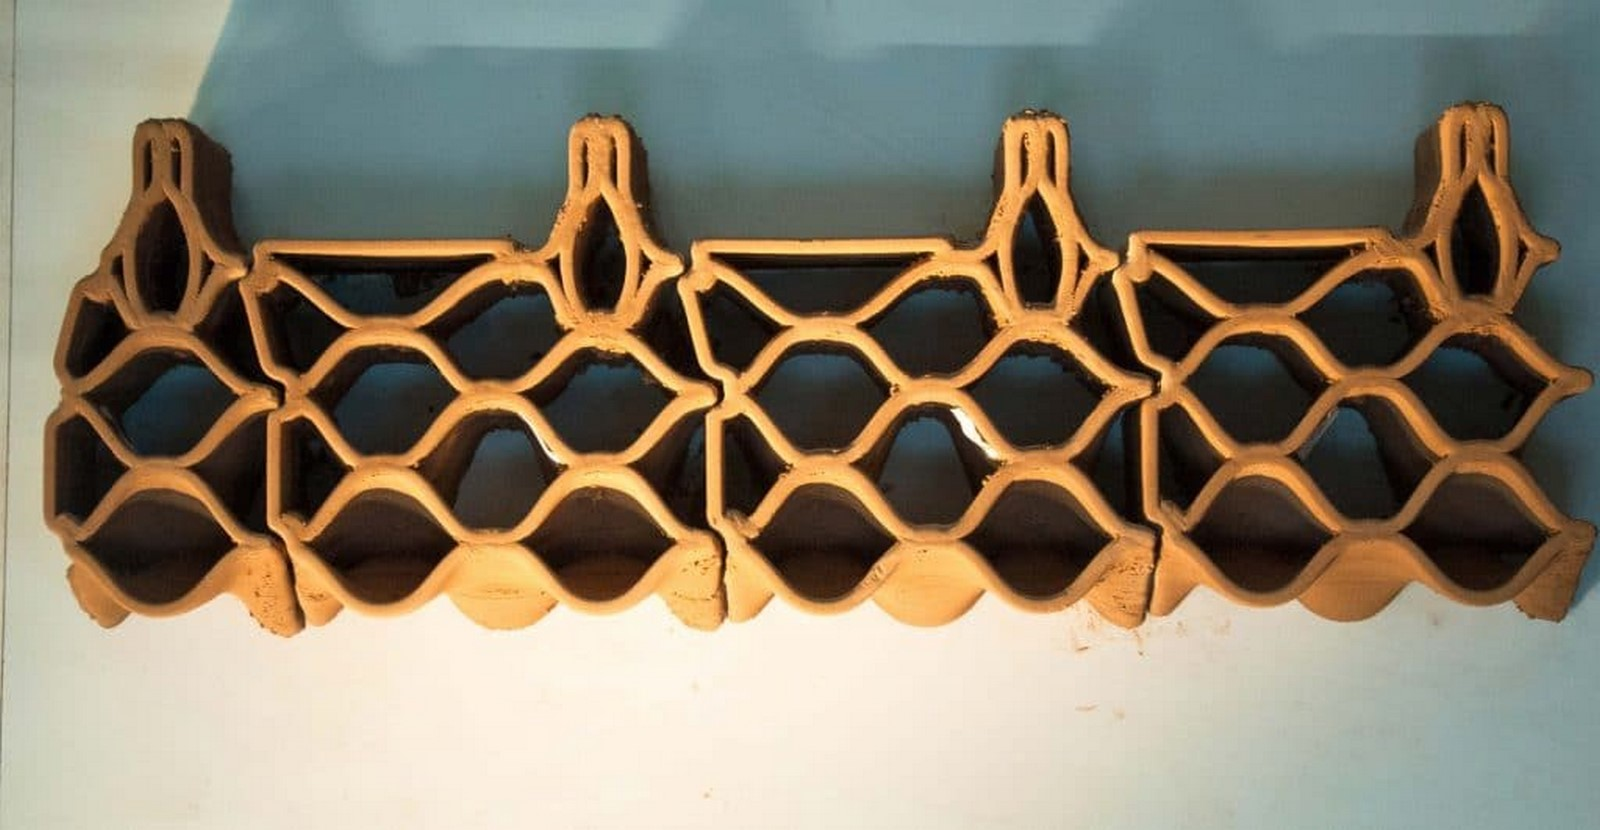 IAAC Research- 3D Printing with 'terra'- a new step in local architecture? - Sheet2